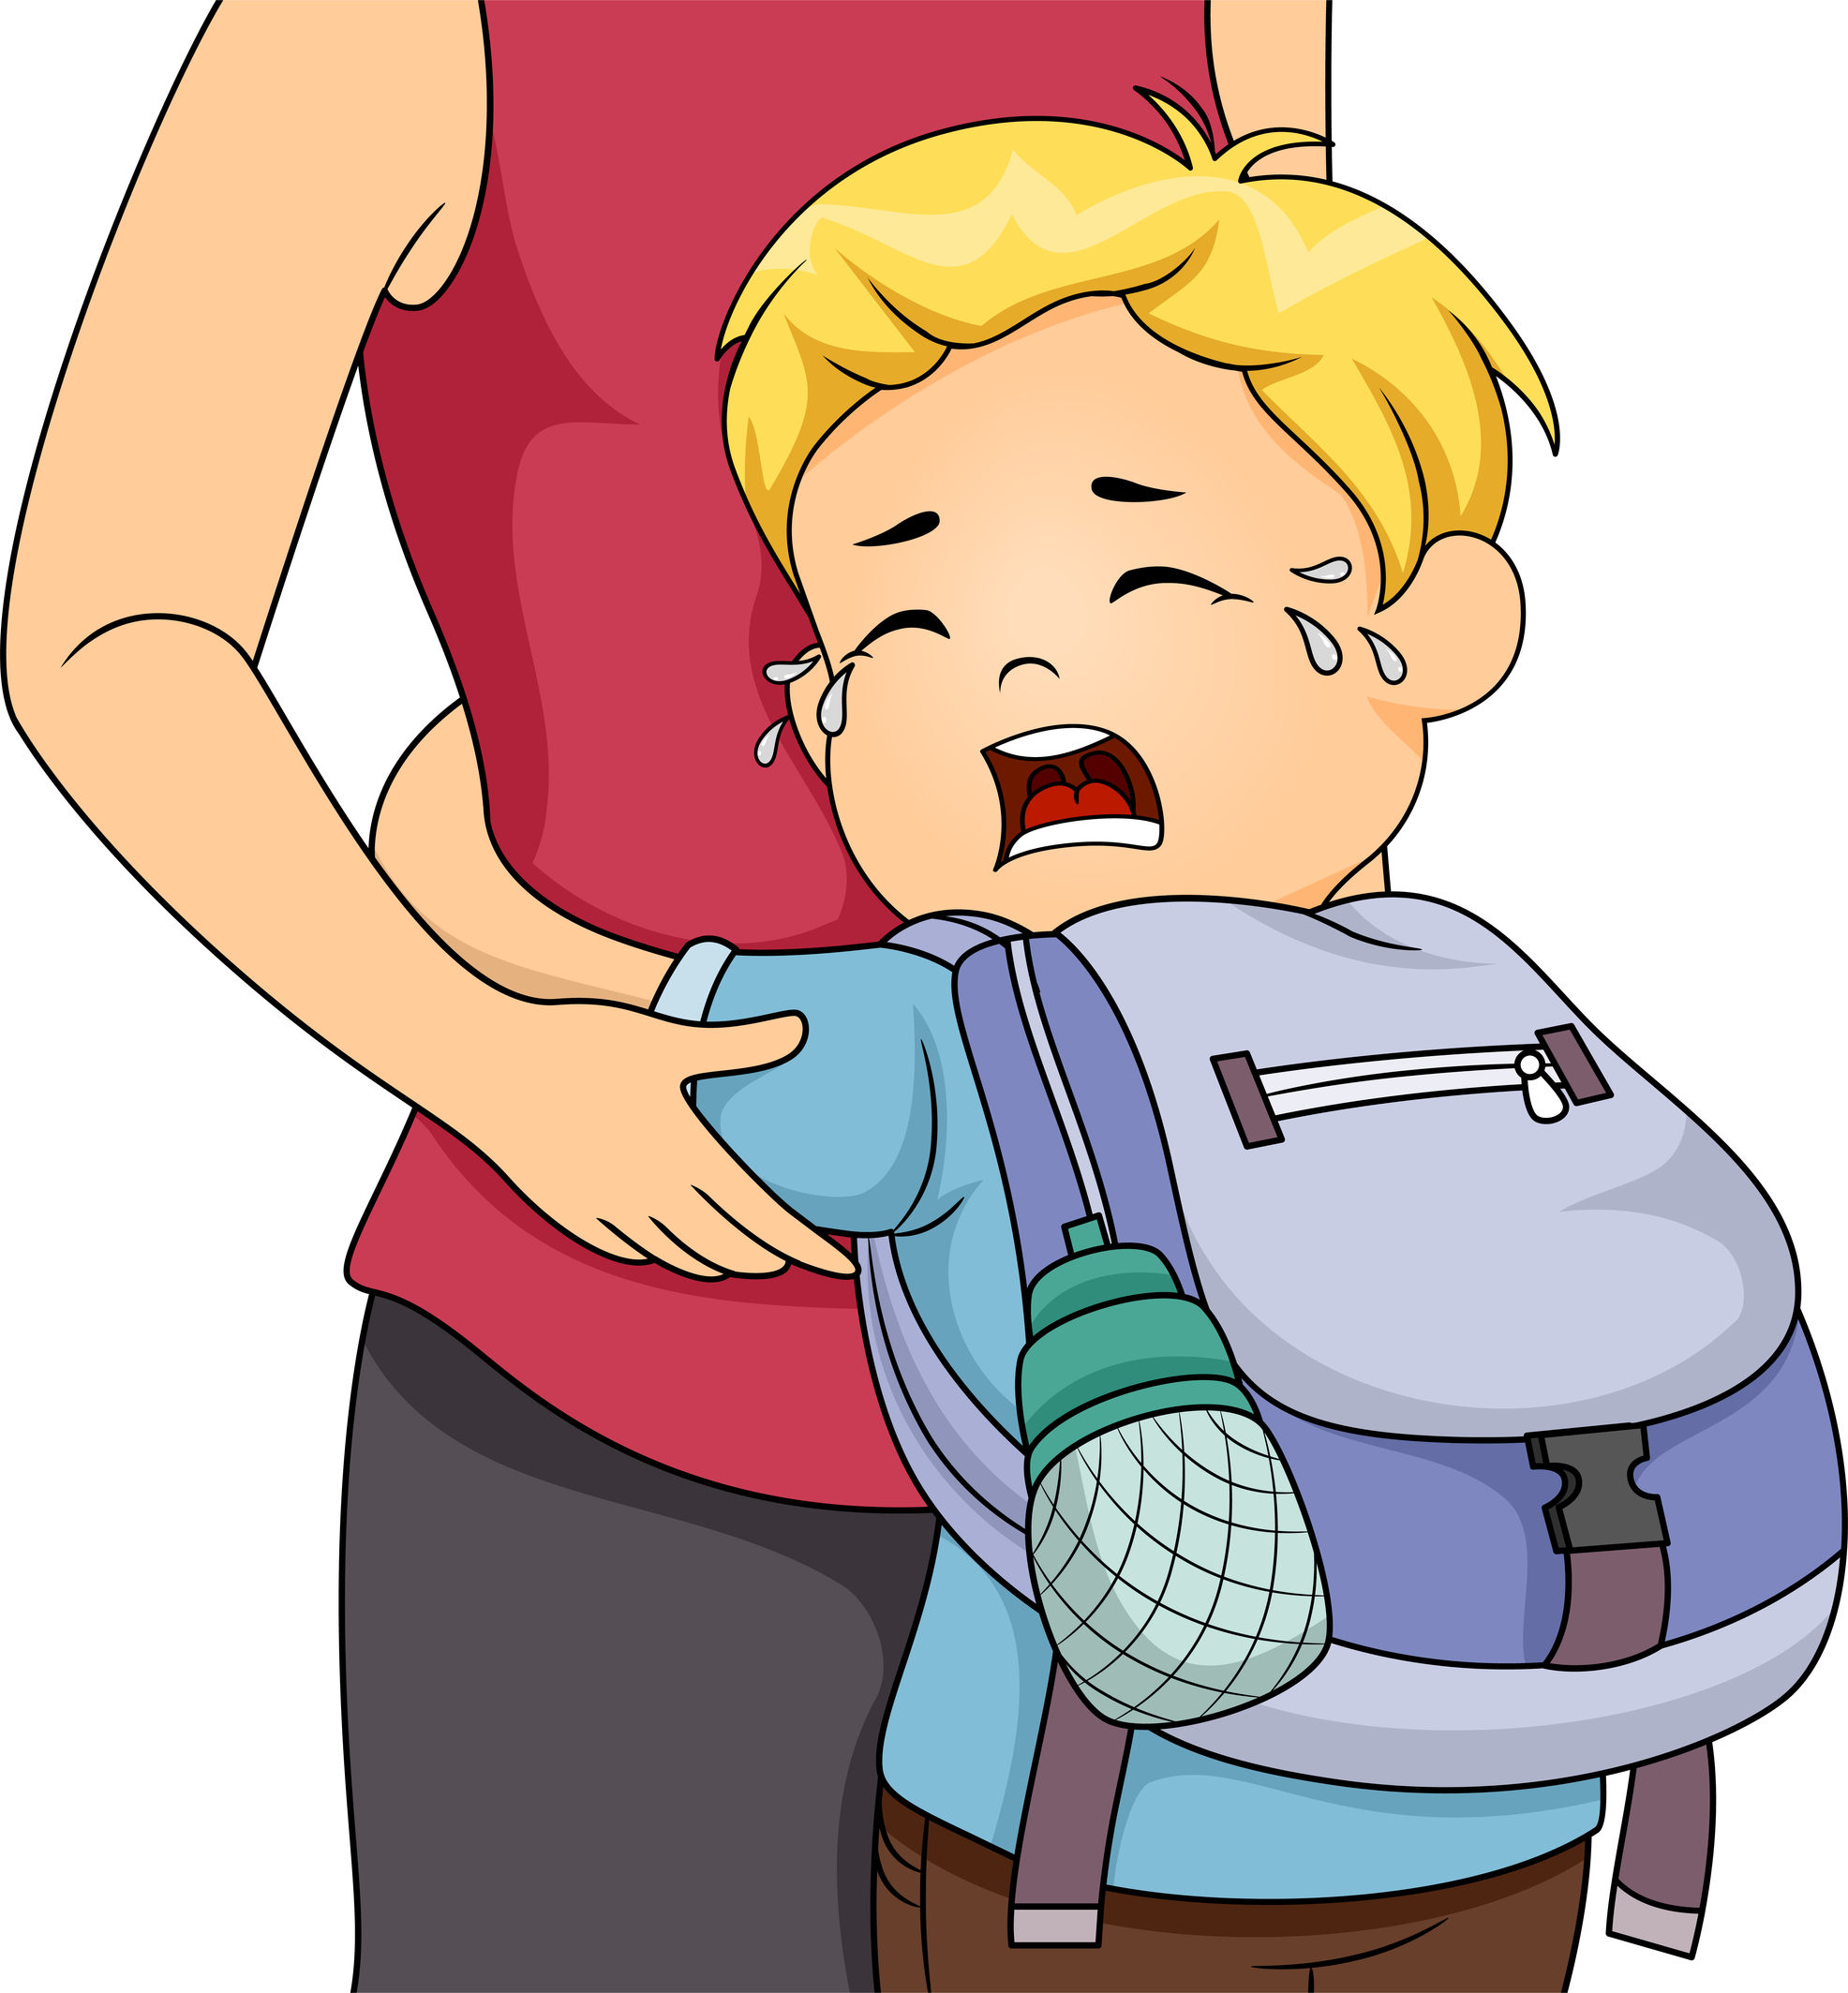 School in children on. Anxiety clipart anxiety disorder